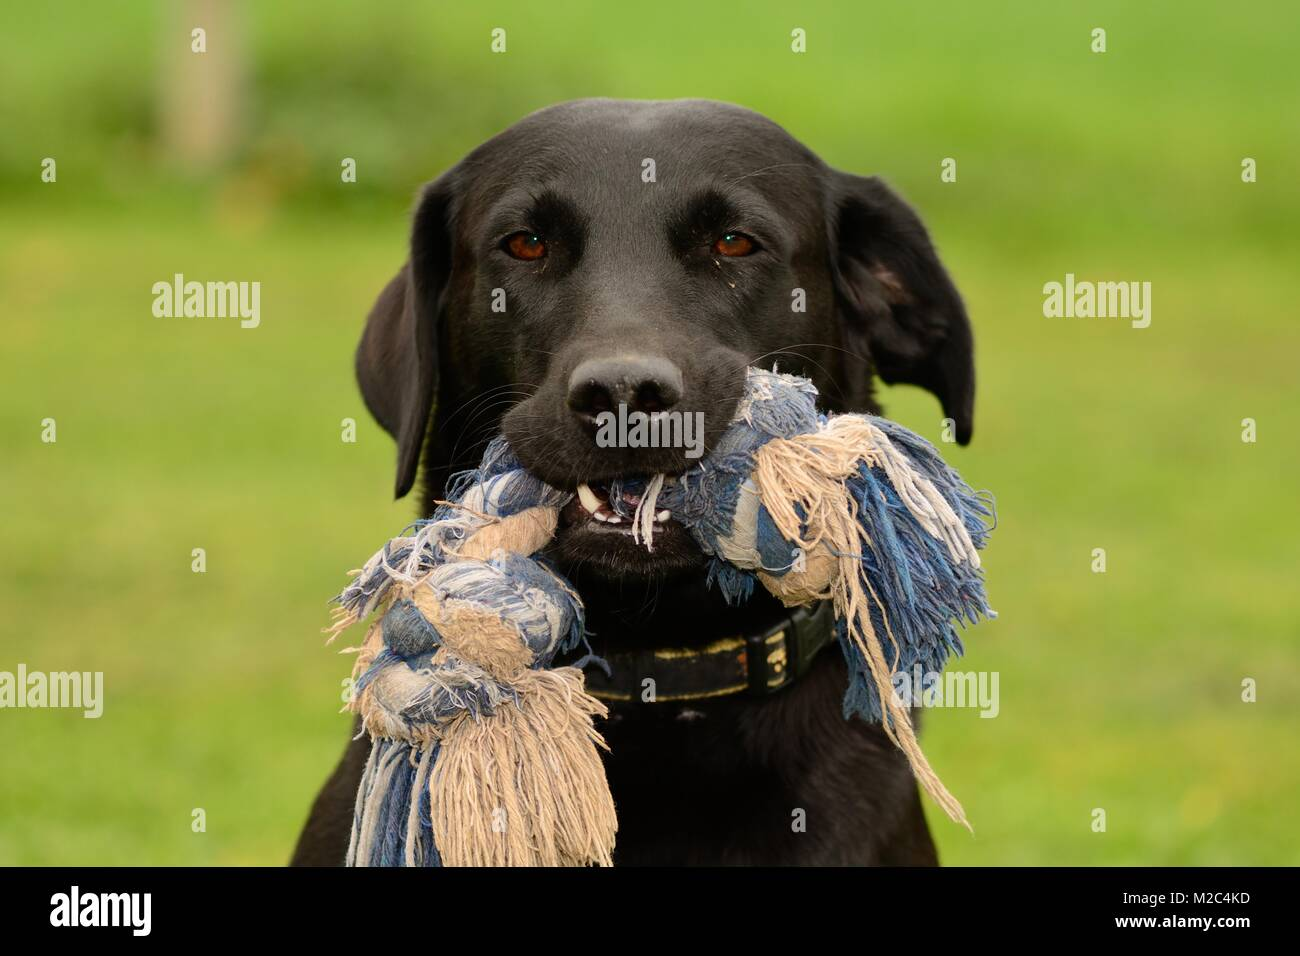 Head shot of a cute black Labrador with a toy in it's mouth - Stock Image